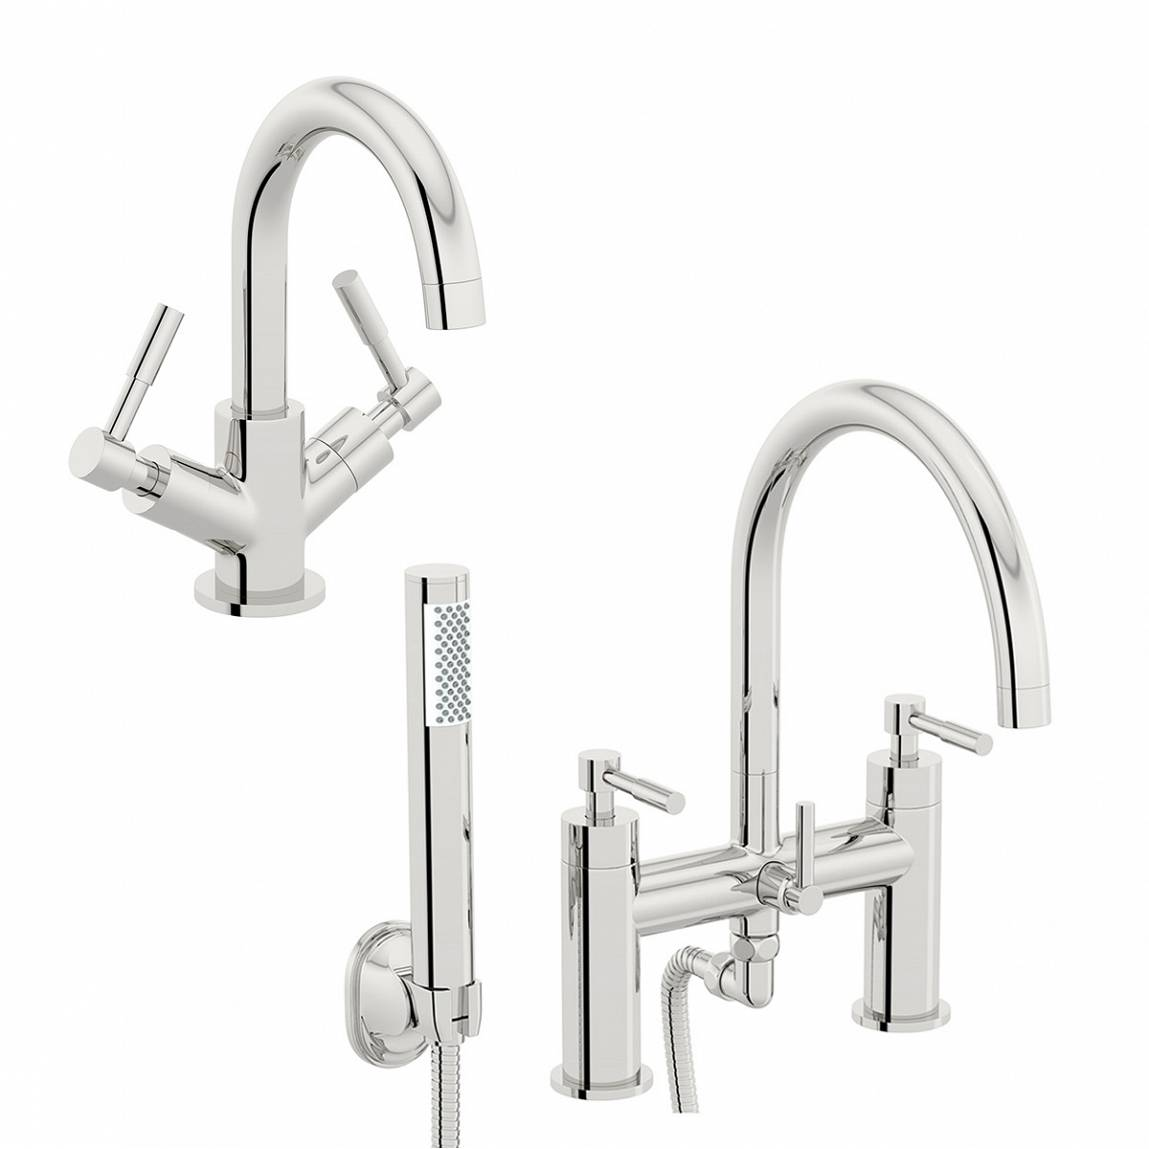 Image of Secta Basin and Bath Shower Mixer Pack